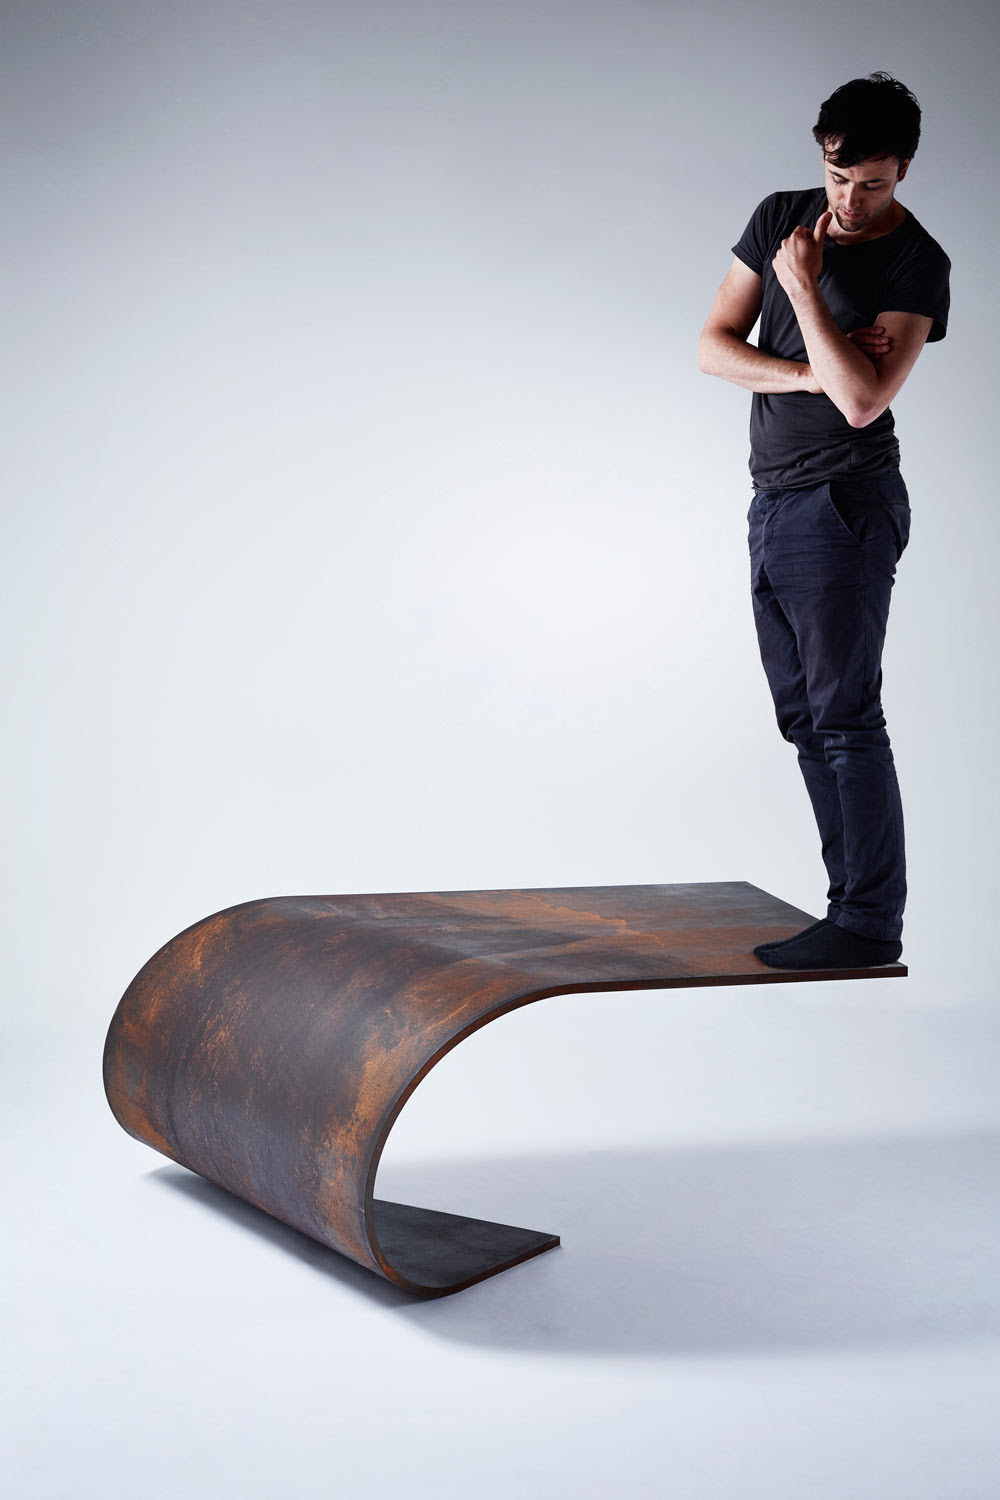 A Perfectly Balanced Table Made of Steel